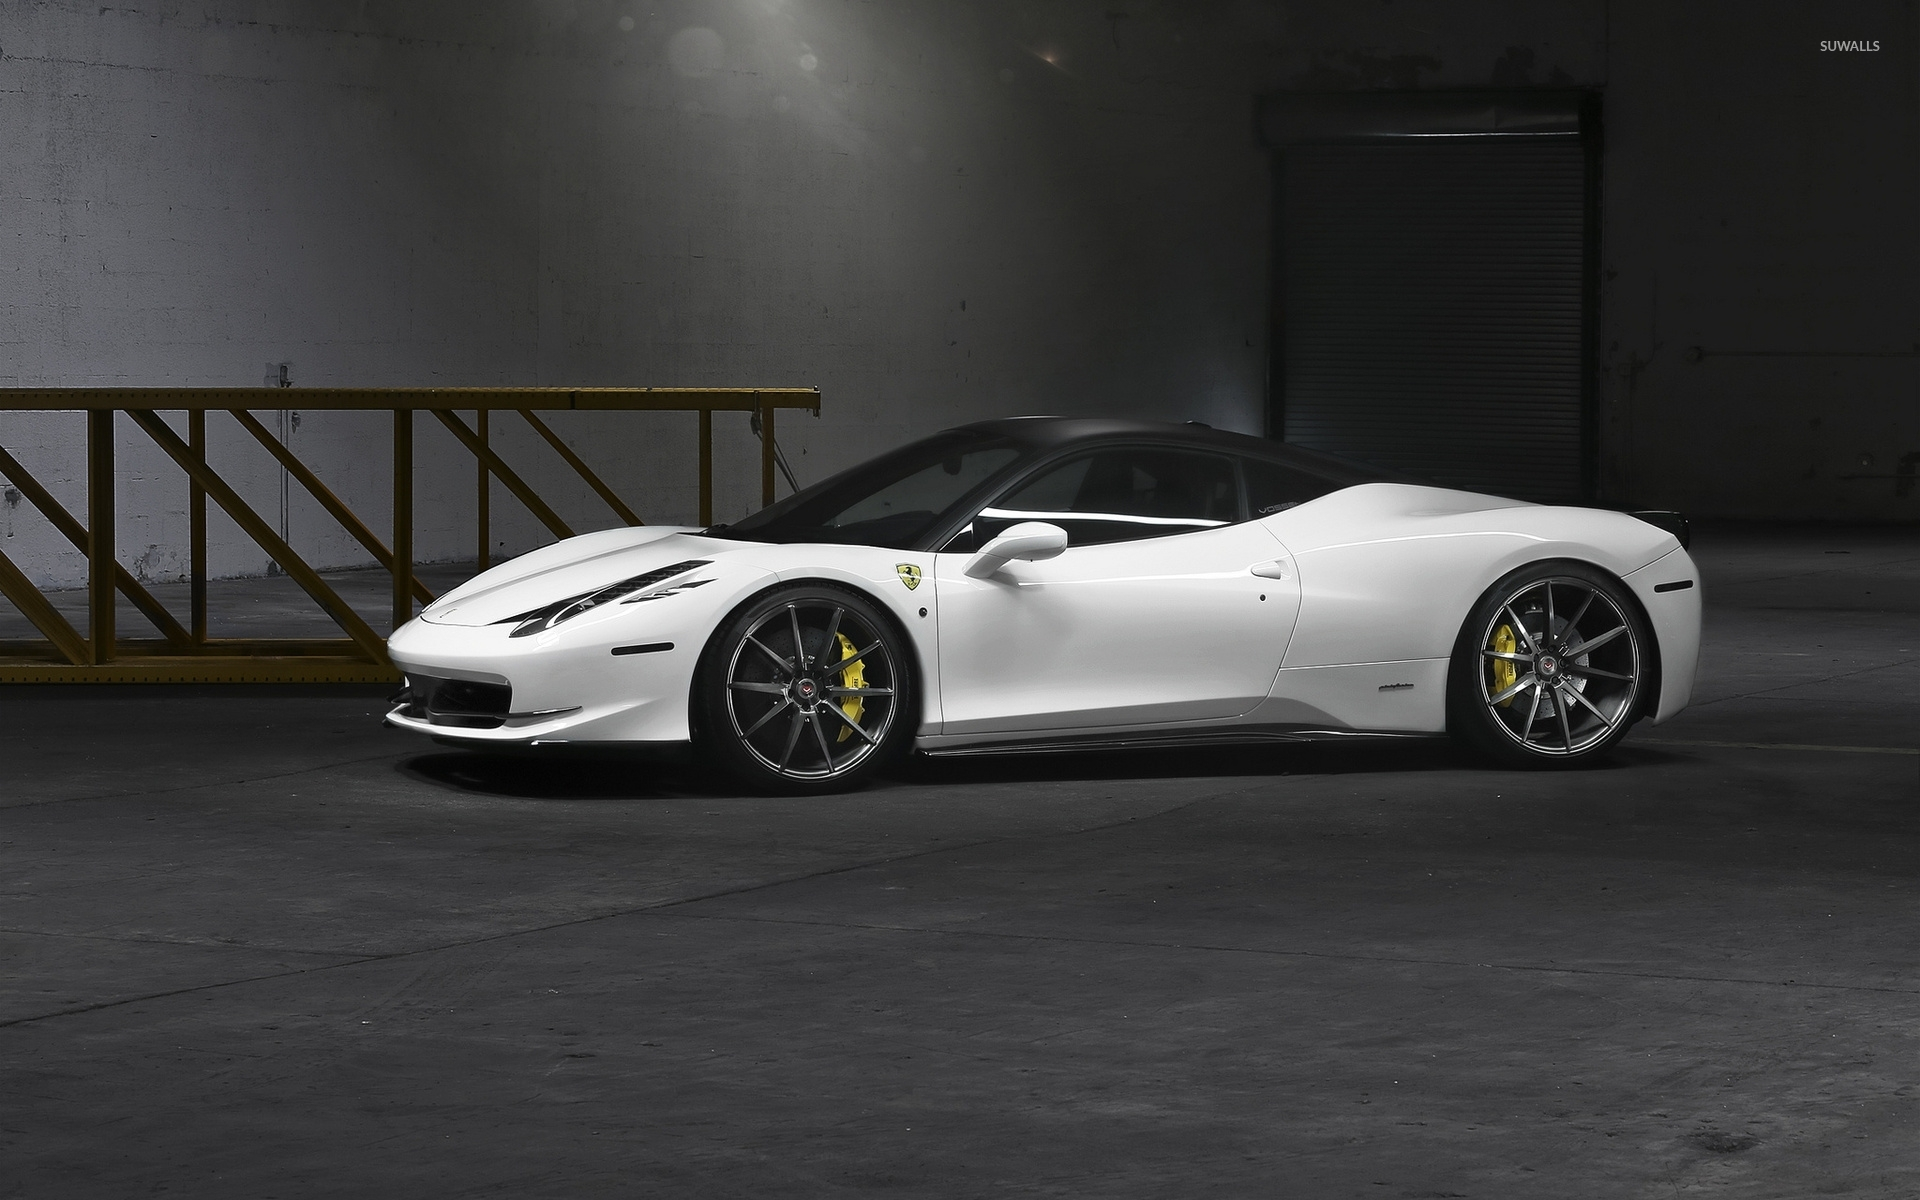 100 ideas ferrari sports cars wallpapers 2011 on evadete 2011 ferrari 458 italia wallpaper car wallpapers 38984 vanachro Image collections